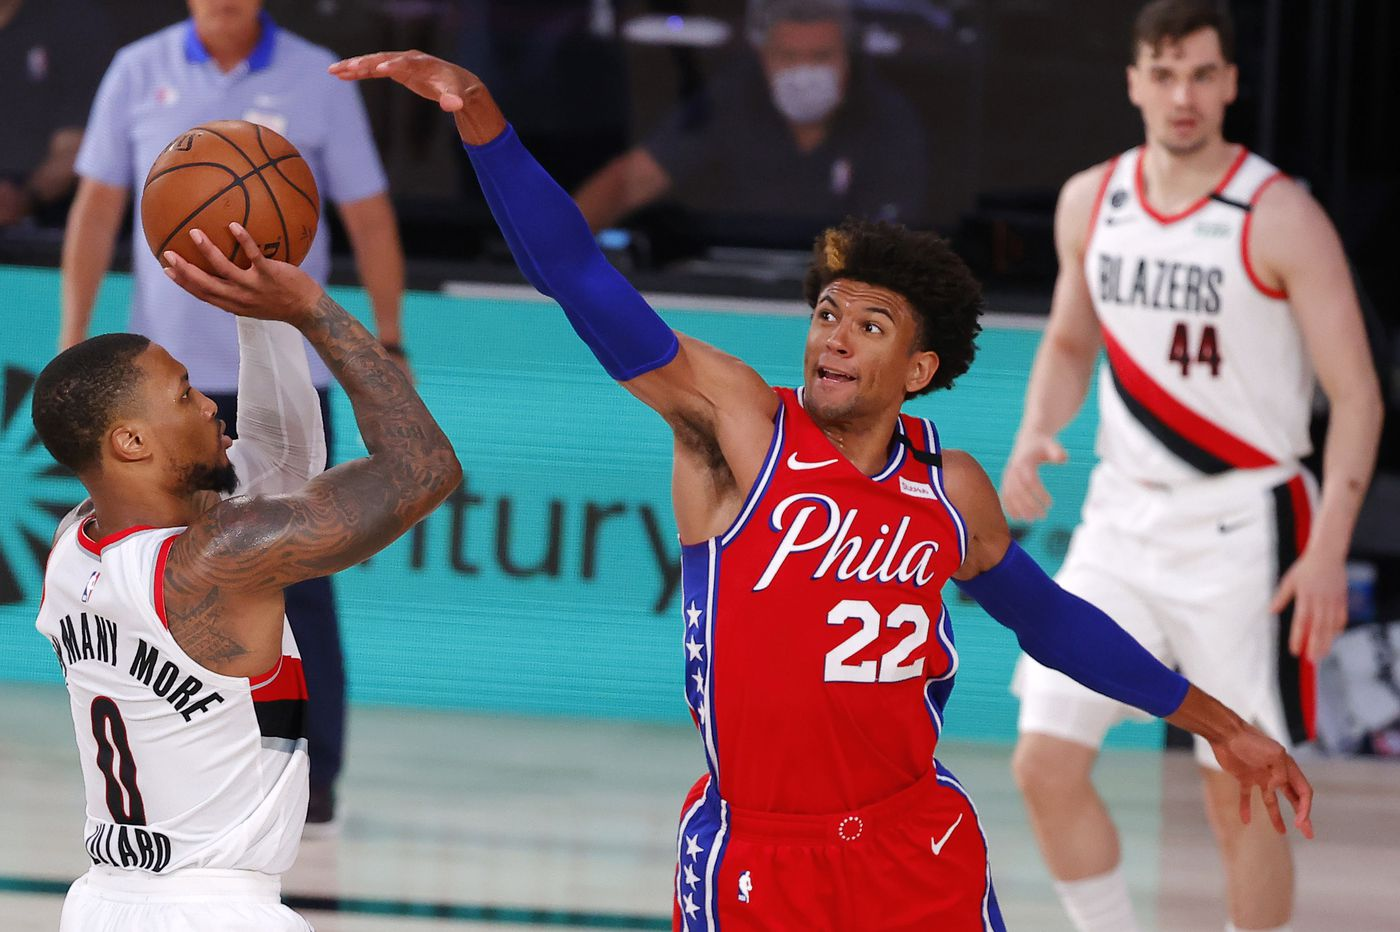 Sixers-Blazers best-worst: Damian Lillard's 51-point performance, Matisse Thybulle's steals, Joel Embiid's ankle injury